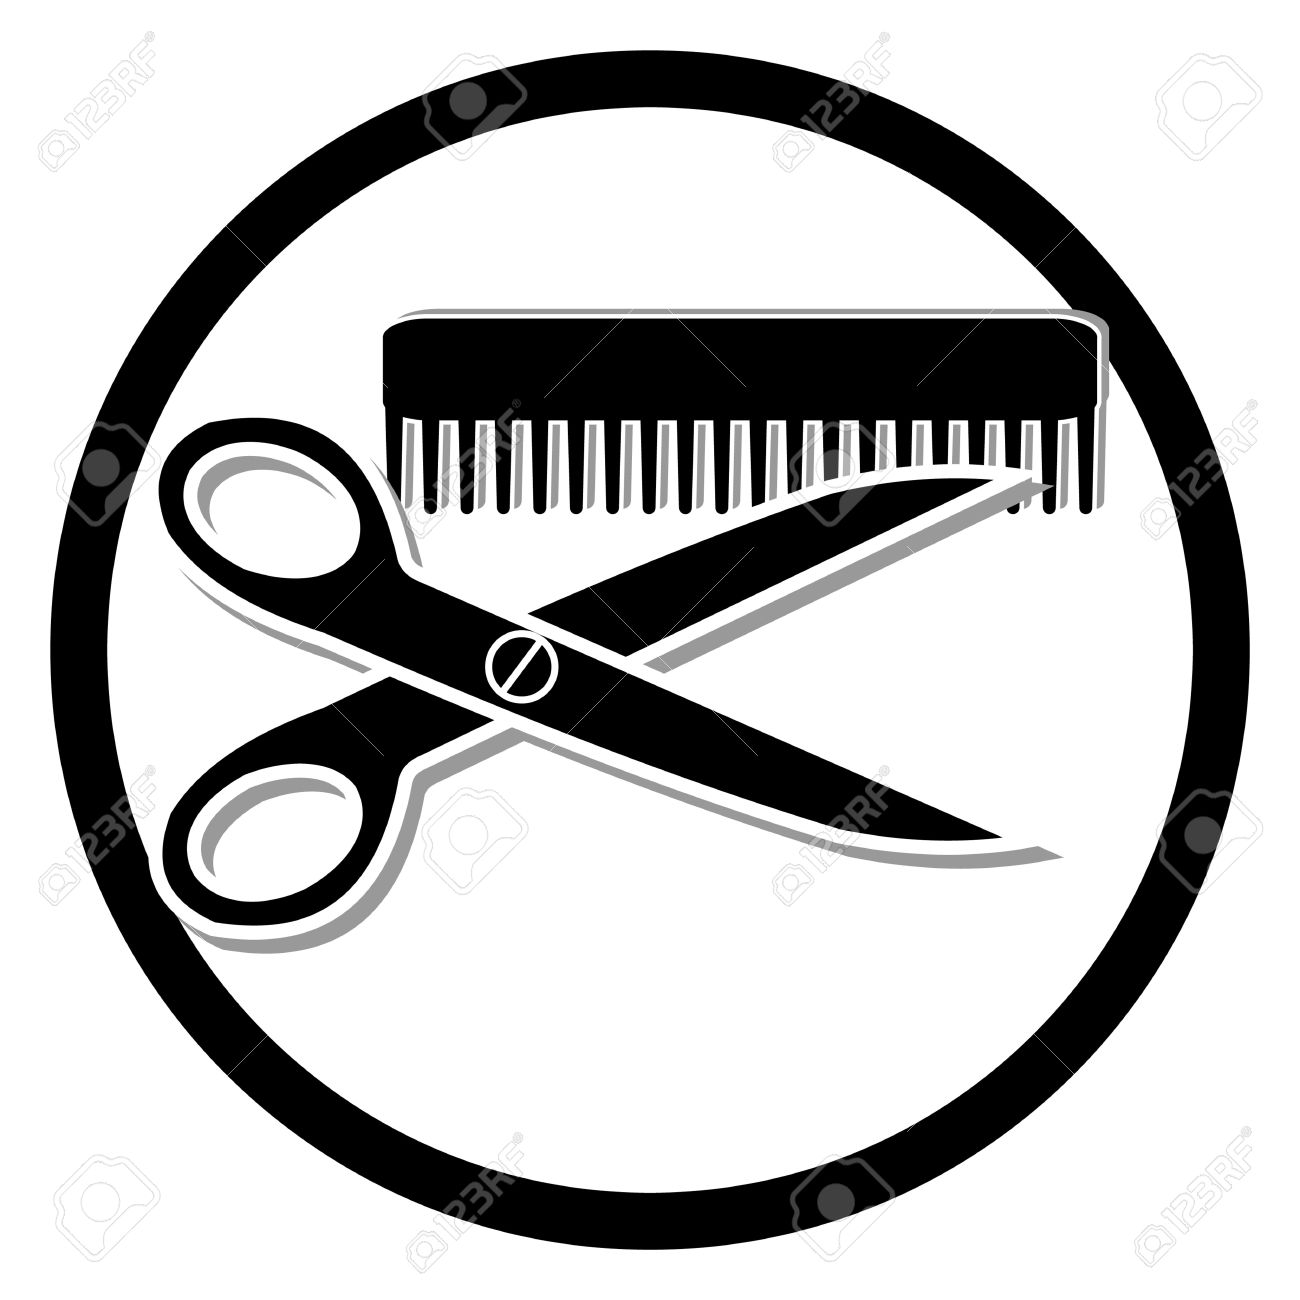 Hair Cutting Clip Art.